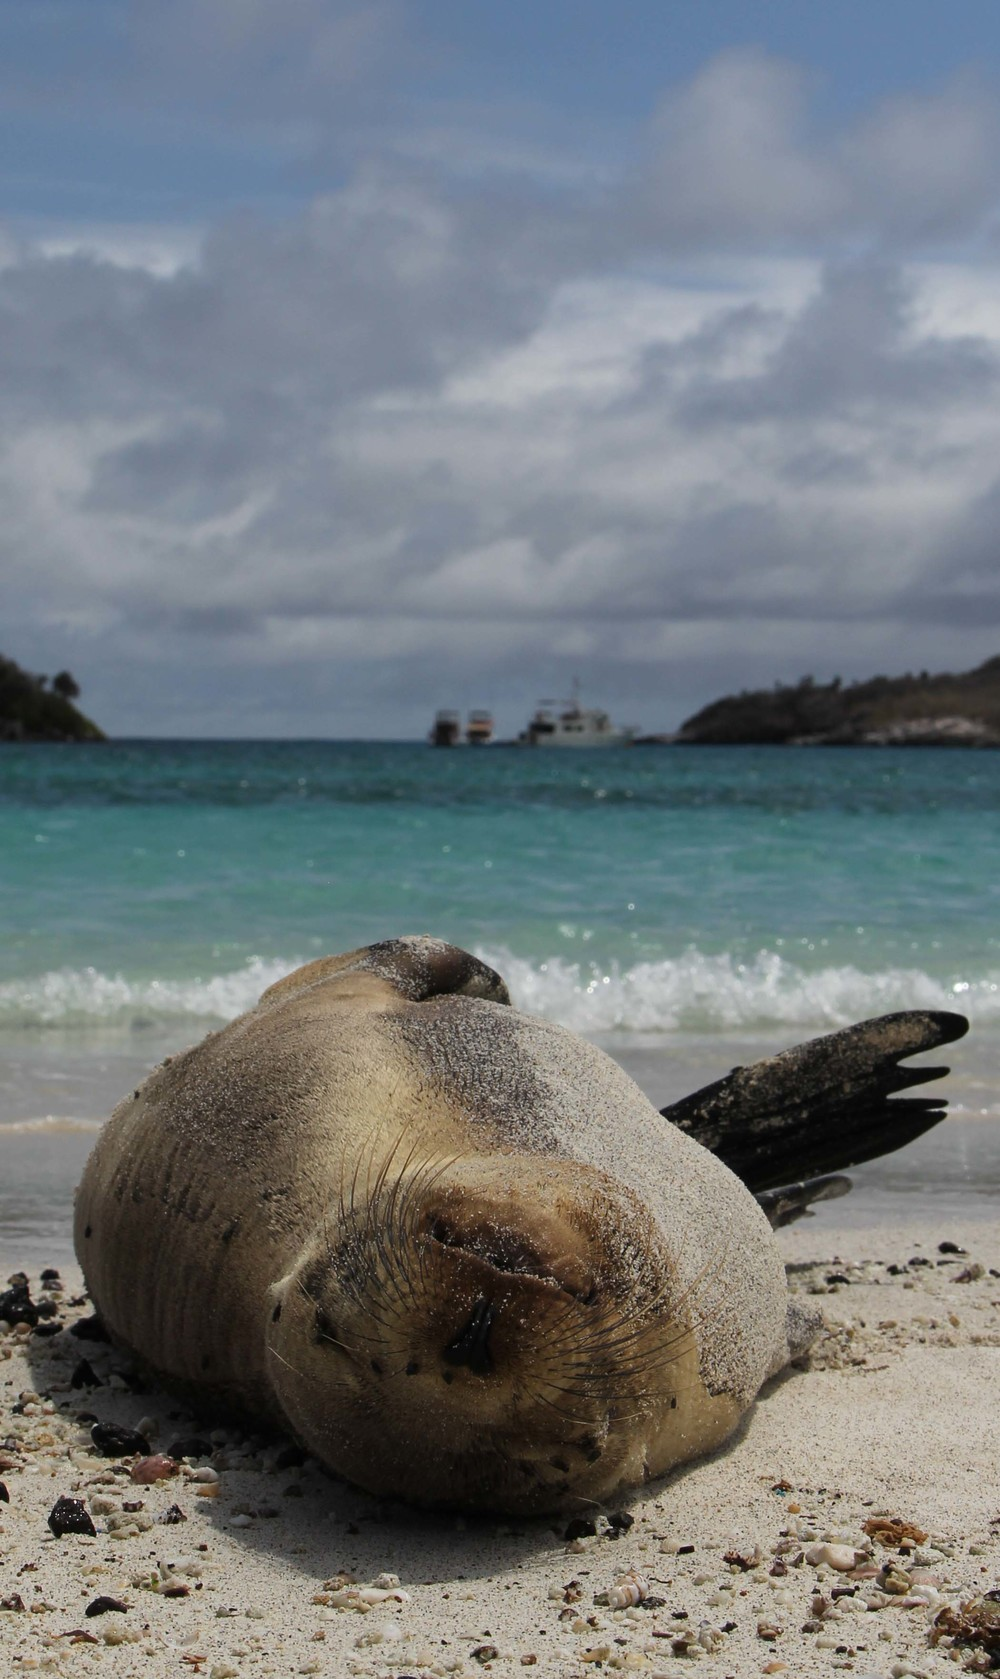 The best part of Galapagos!